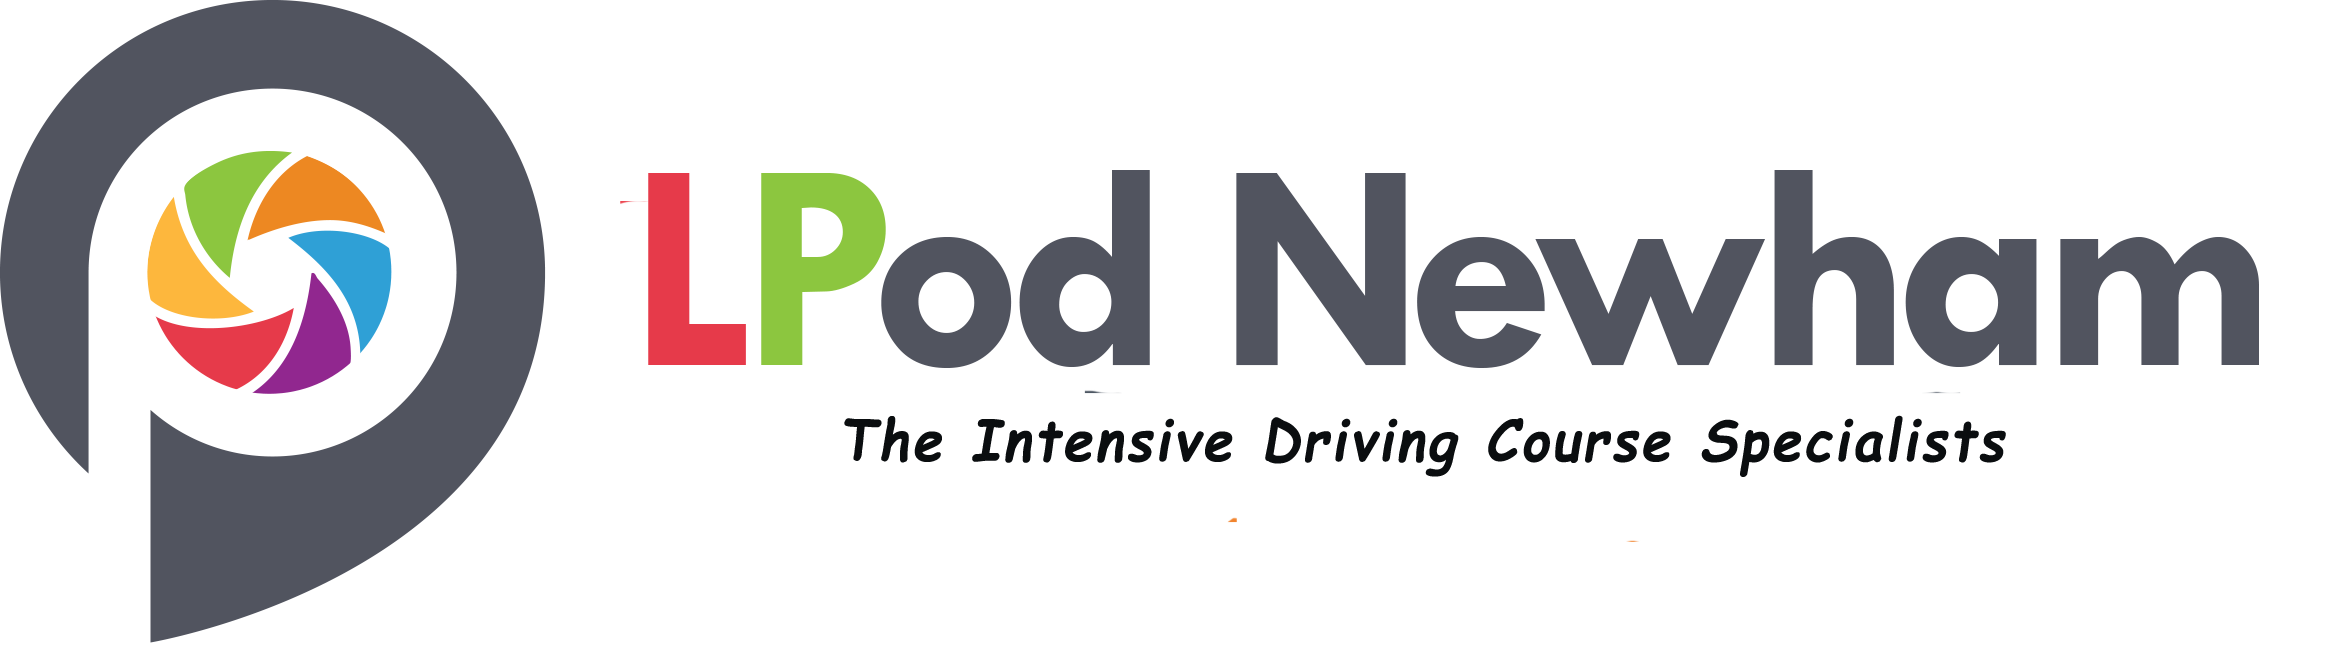 intensive driving courses newham, intensive driving lessons newham, intensive driving school newham